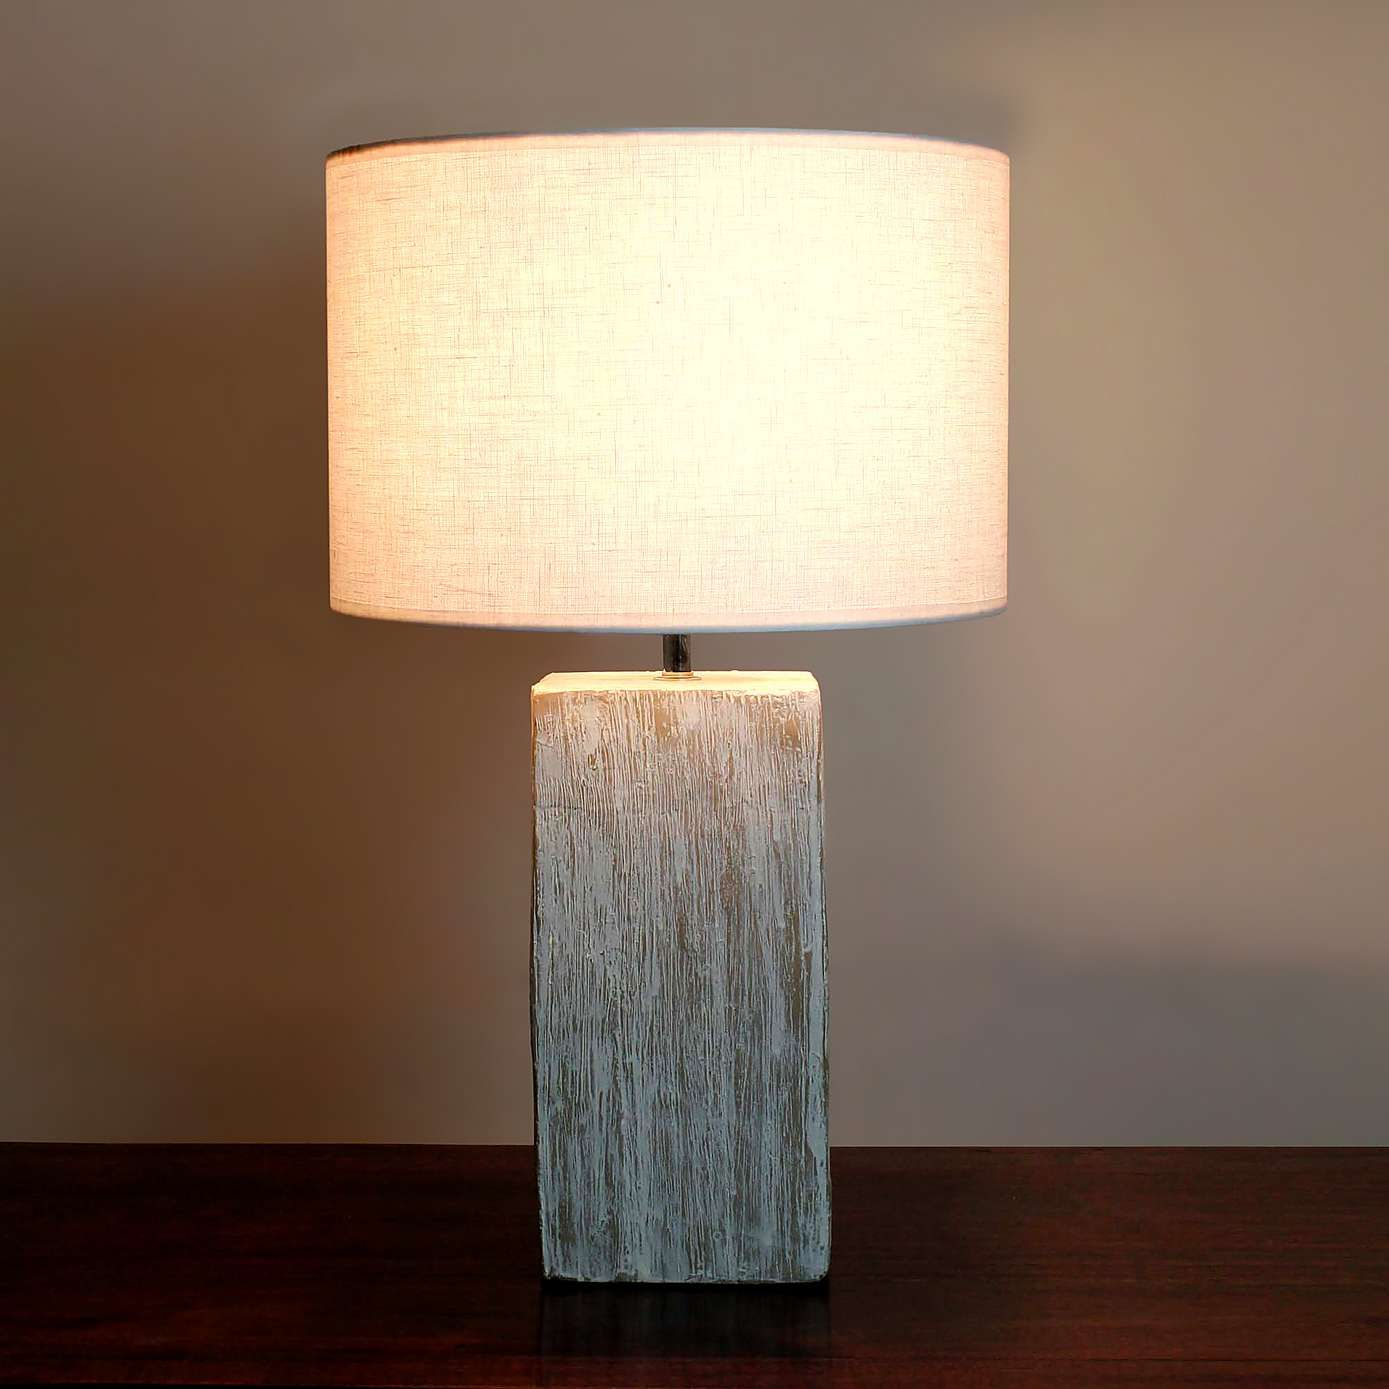 Roxy Distressed Wood Table Lamp Distressed Wood Table Table Lamp Wood Table Lamp